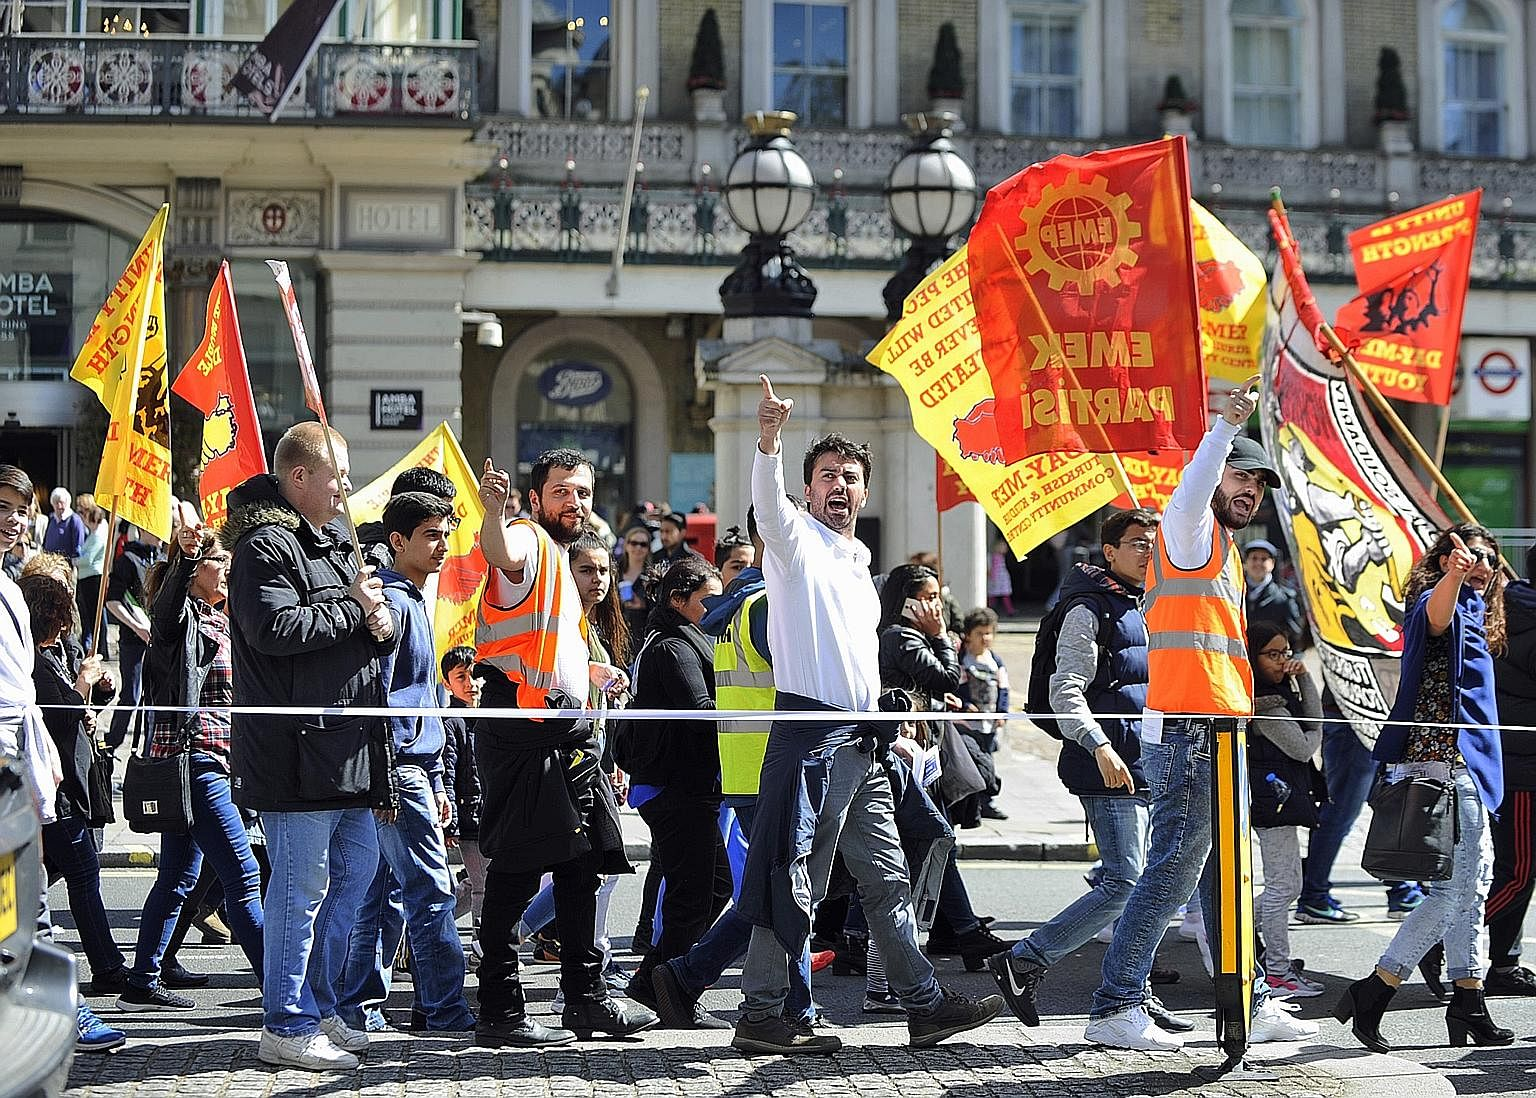 Protesters holding a May Day march in London. Left unchecked, globalisation has been shown to widen the income gap and negatively affect the standard of living of the average citizen. Wealth is largely concentrated in the pockets of the moneyed elite